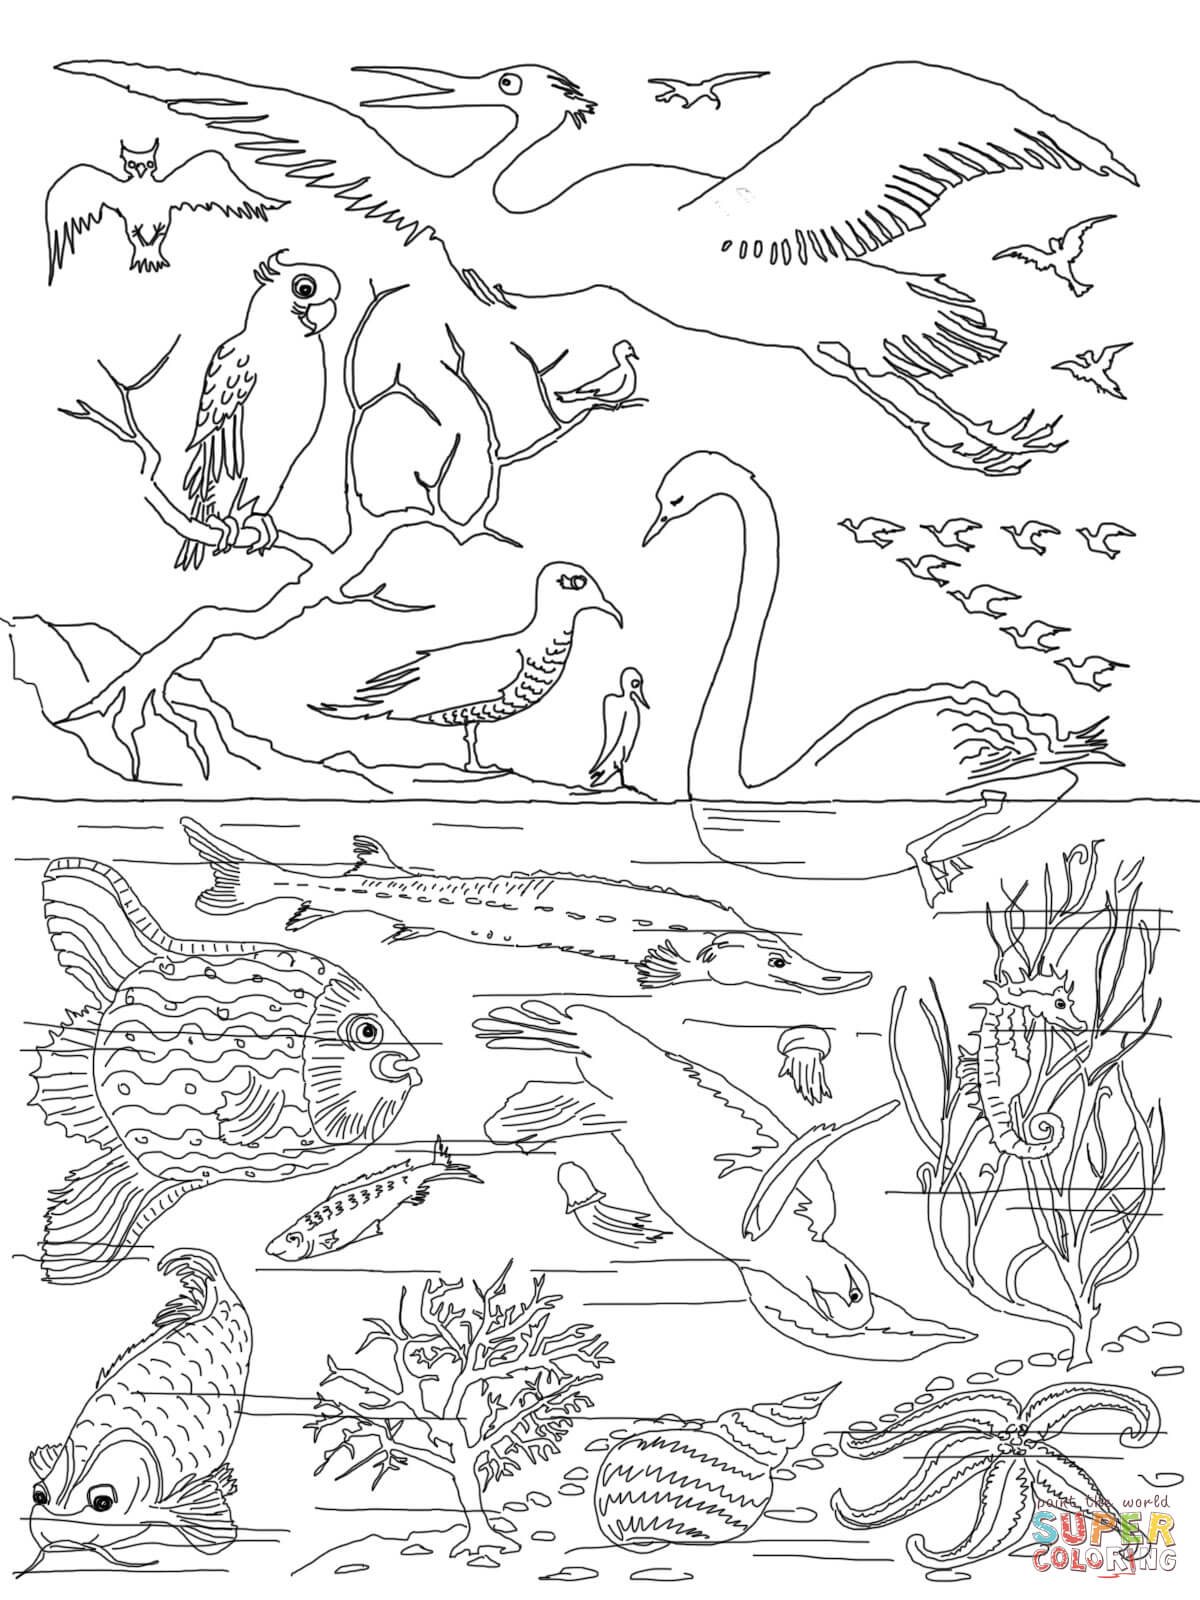 5th Day Of Creation Coloring Page